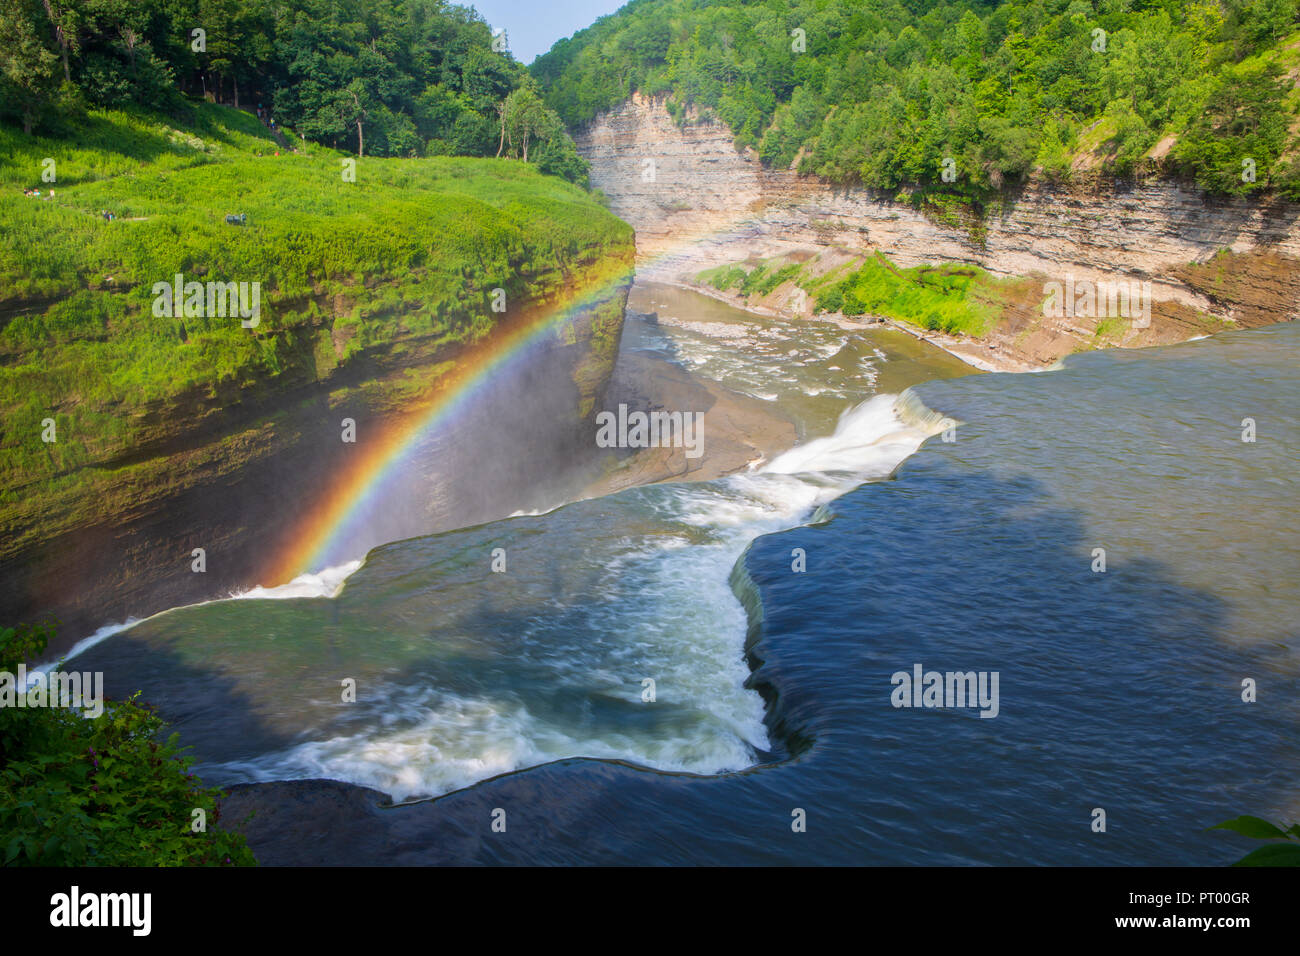 Letchworth State Park is a 14,427-acre state park located in Livingston and Wyoming counties, New York and is considered the Grand Canyon of the east. - Stock Image